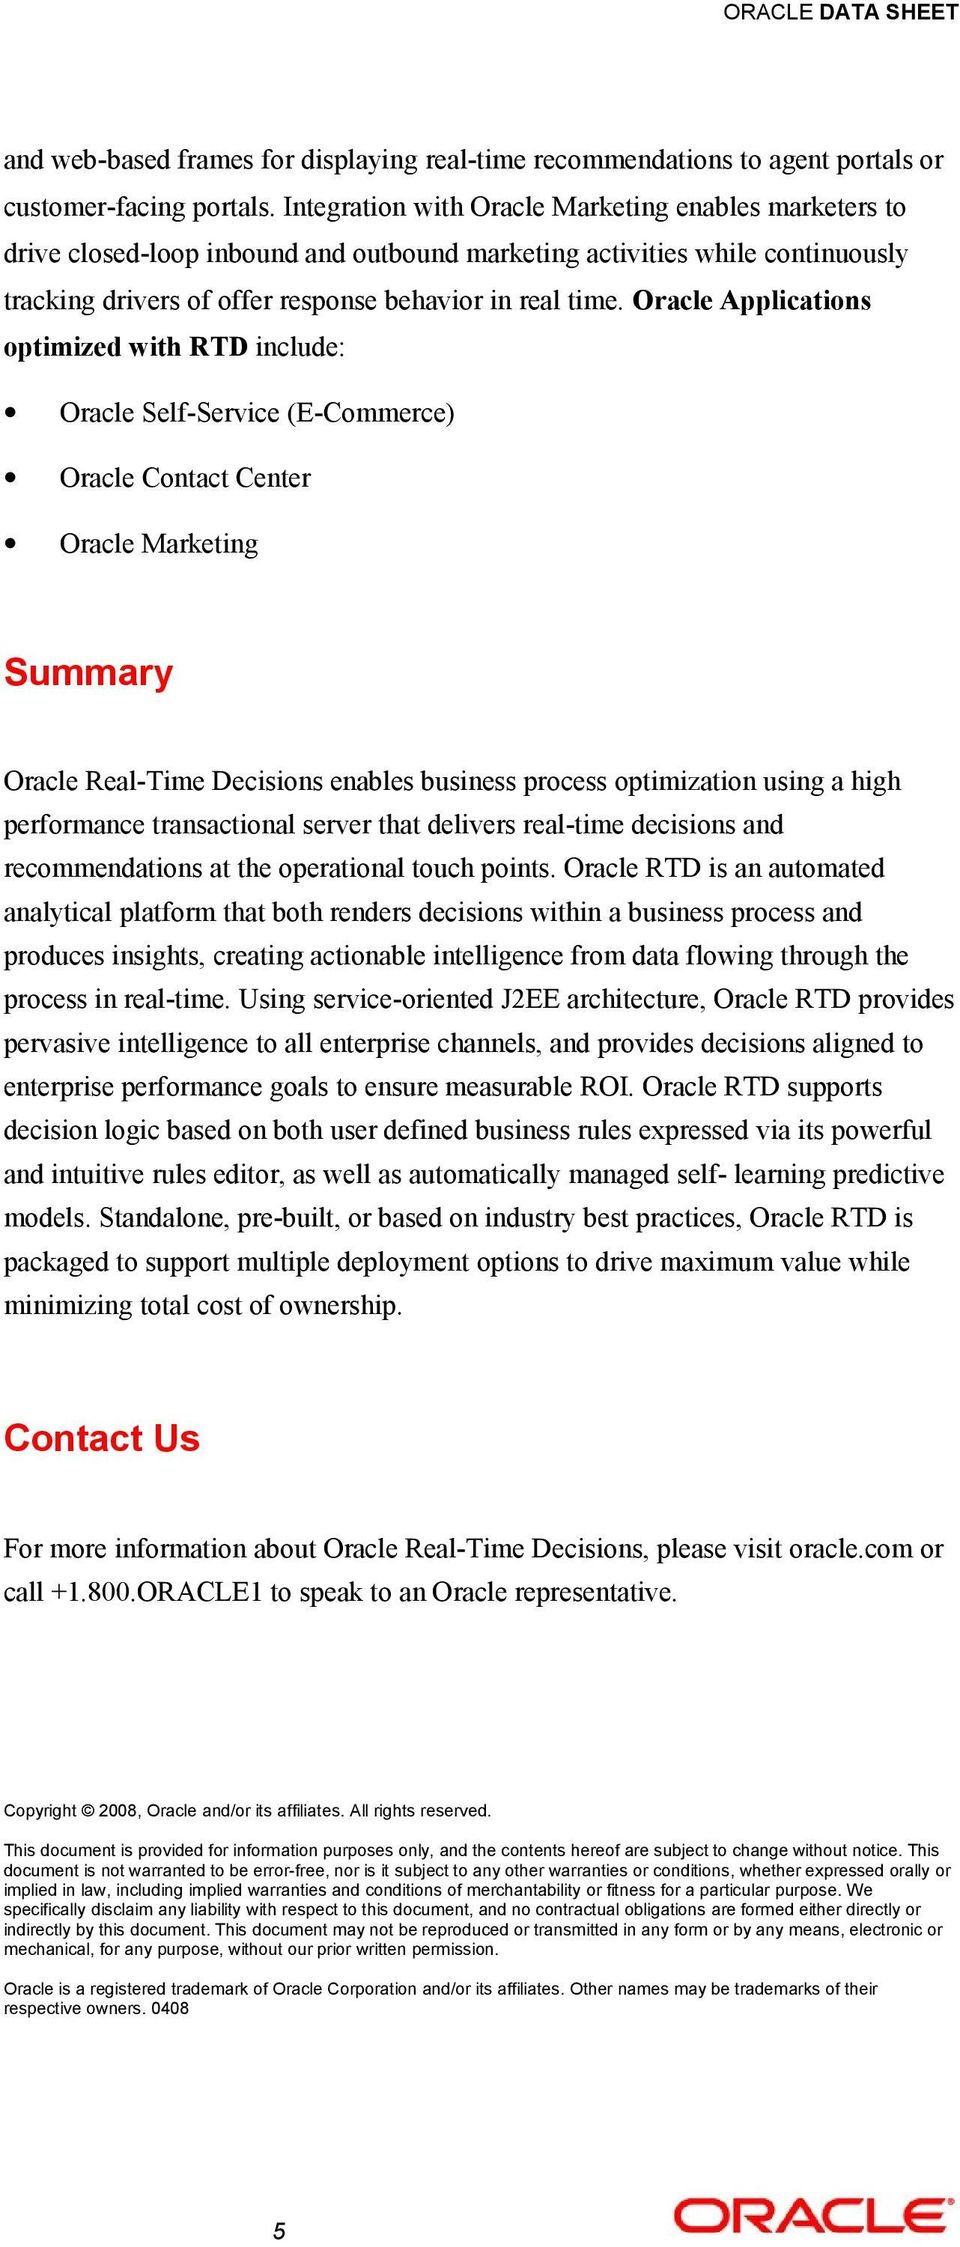 Oracle Applications optimized with RTD include: Oracle Self-Service (E-Commerce) Oracle Contact Center Oracle Marketing Summary Oracle Real-Time Decisions enables business process optimization using